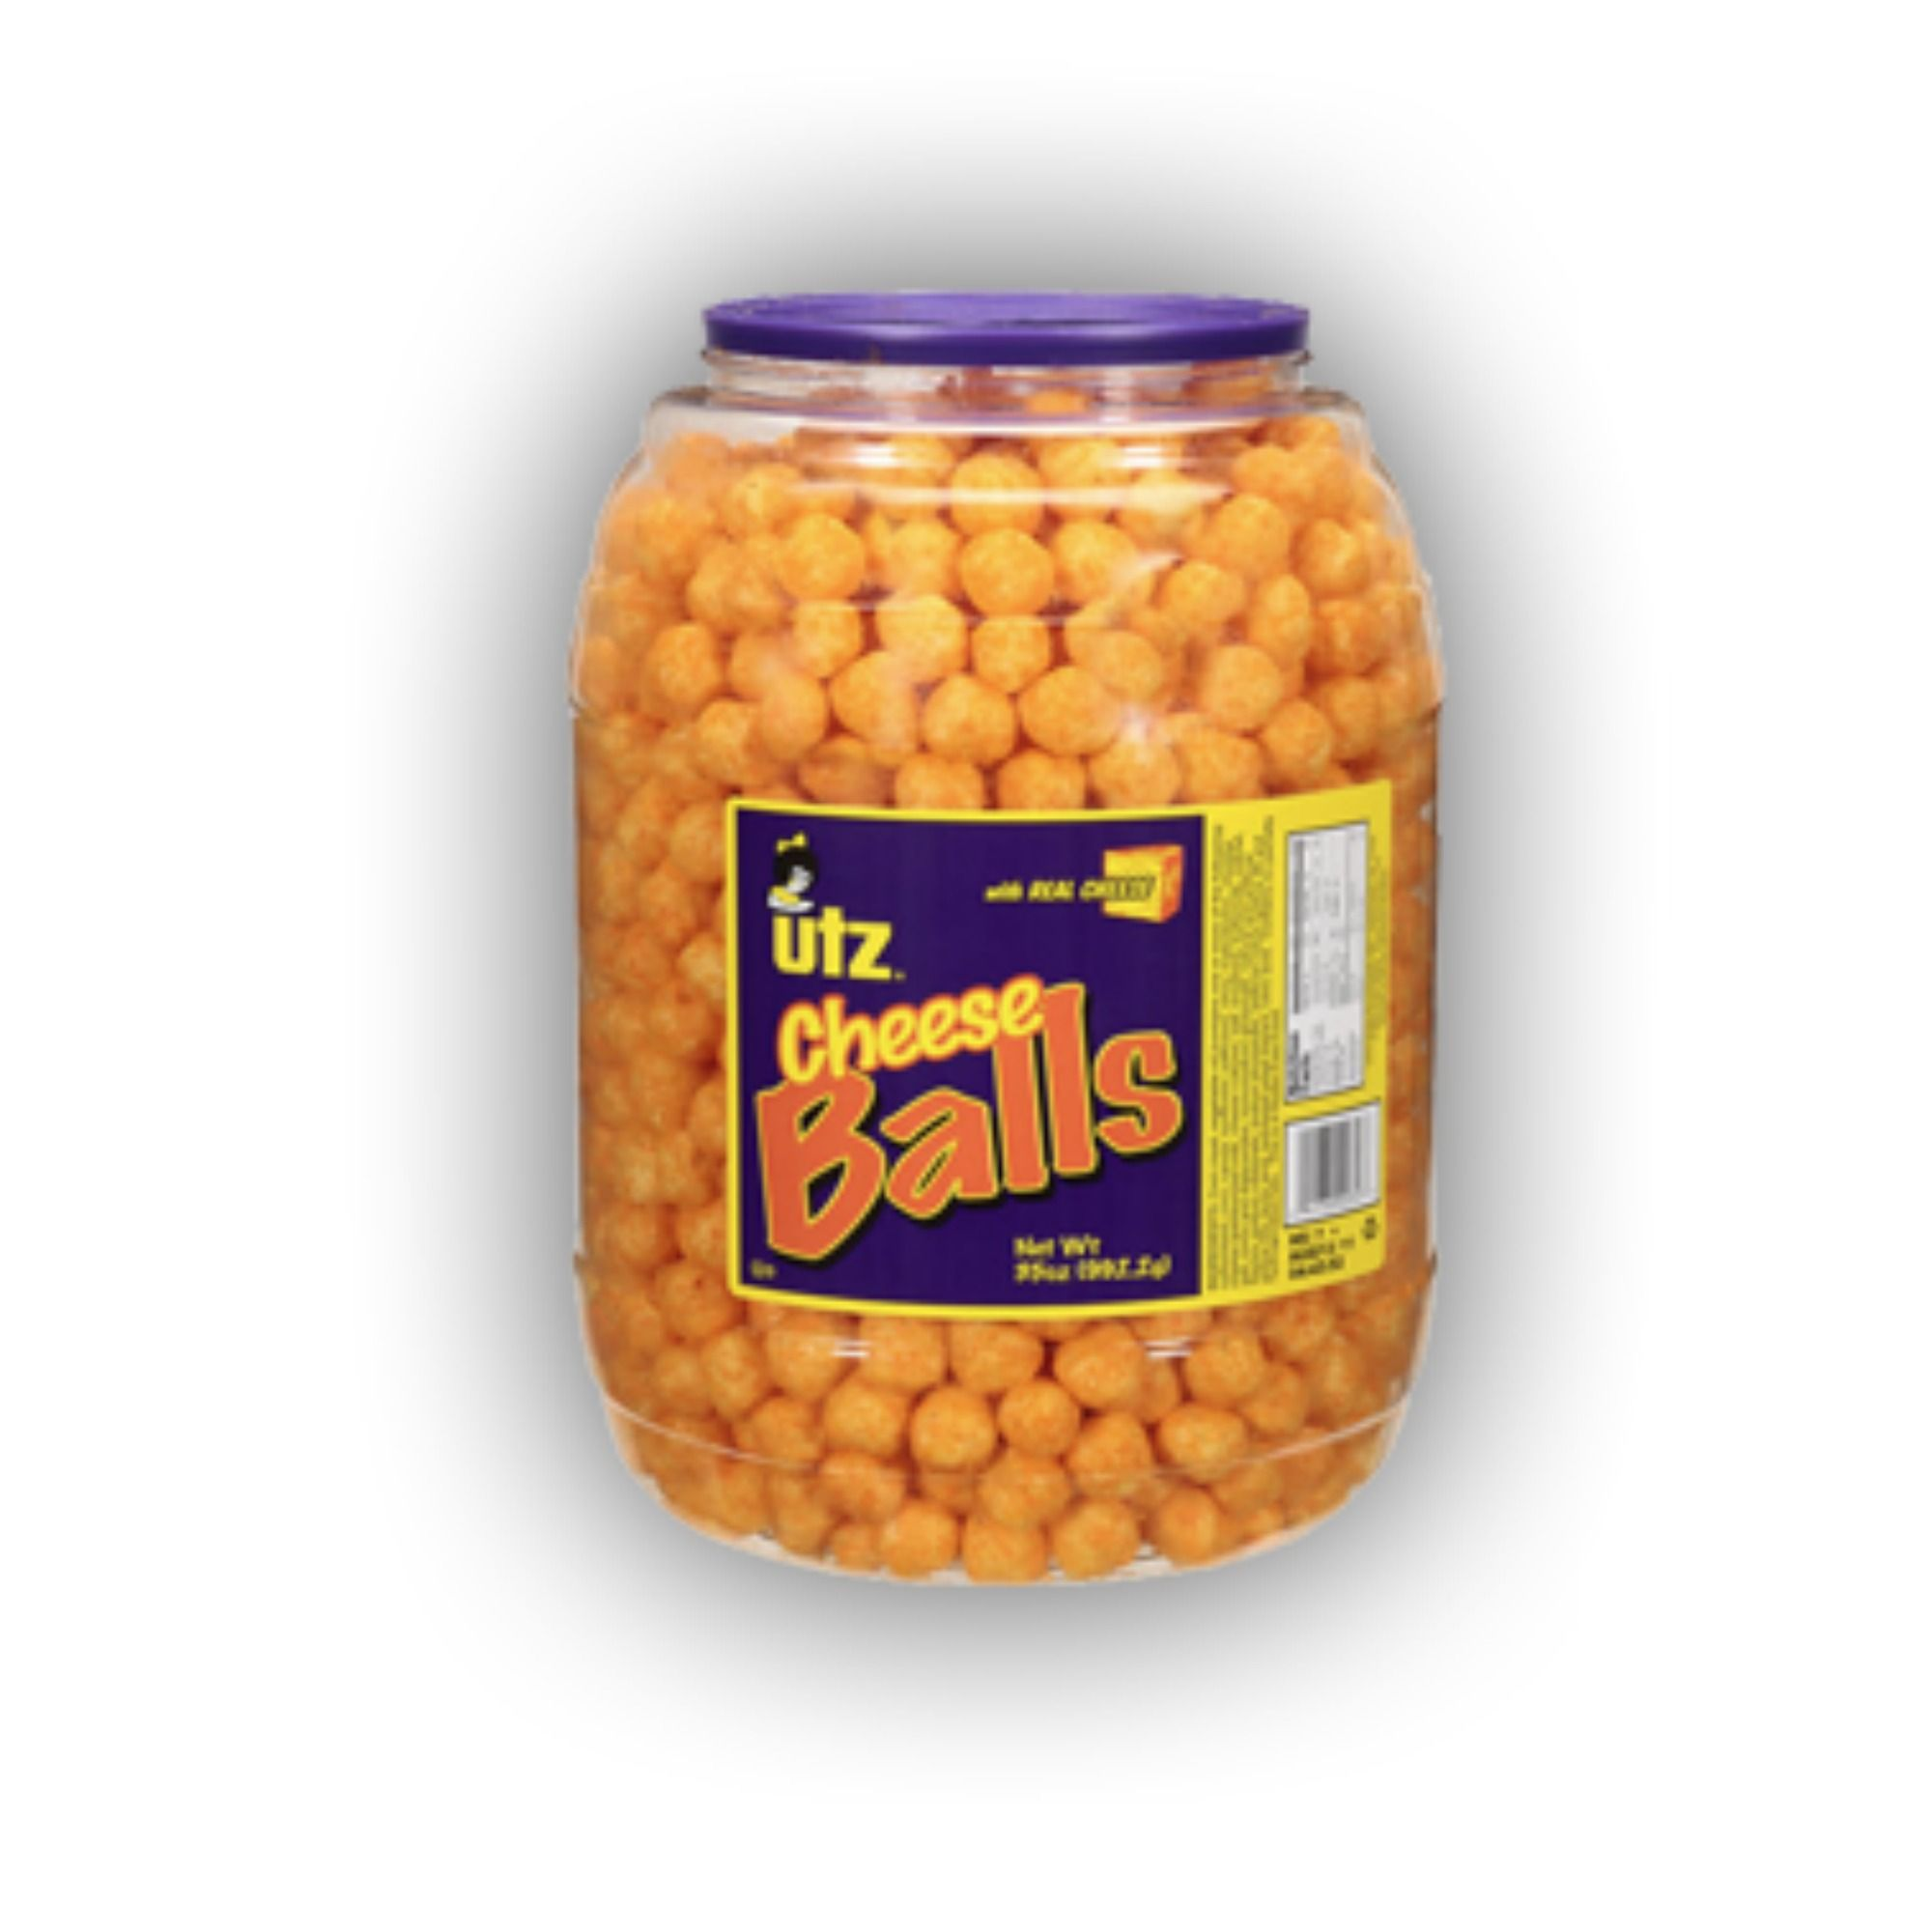 FREE Barrel of Utz Cheese Balls On 1/1 | I Don't Have Time